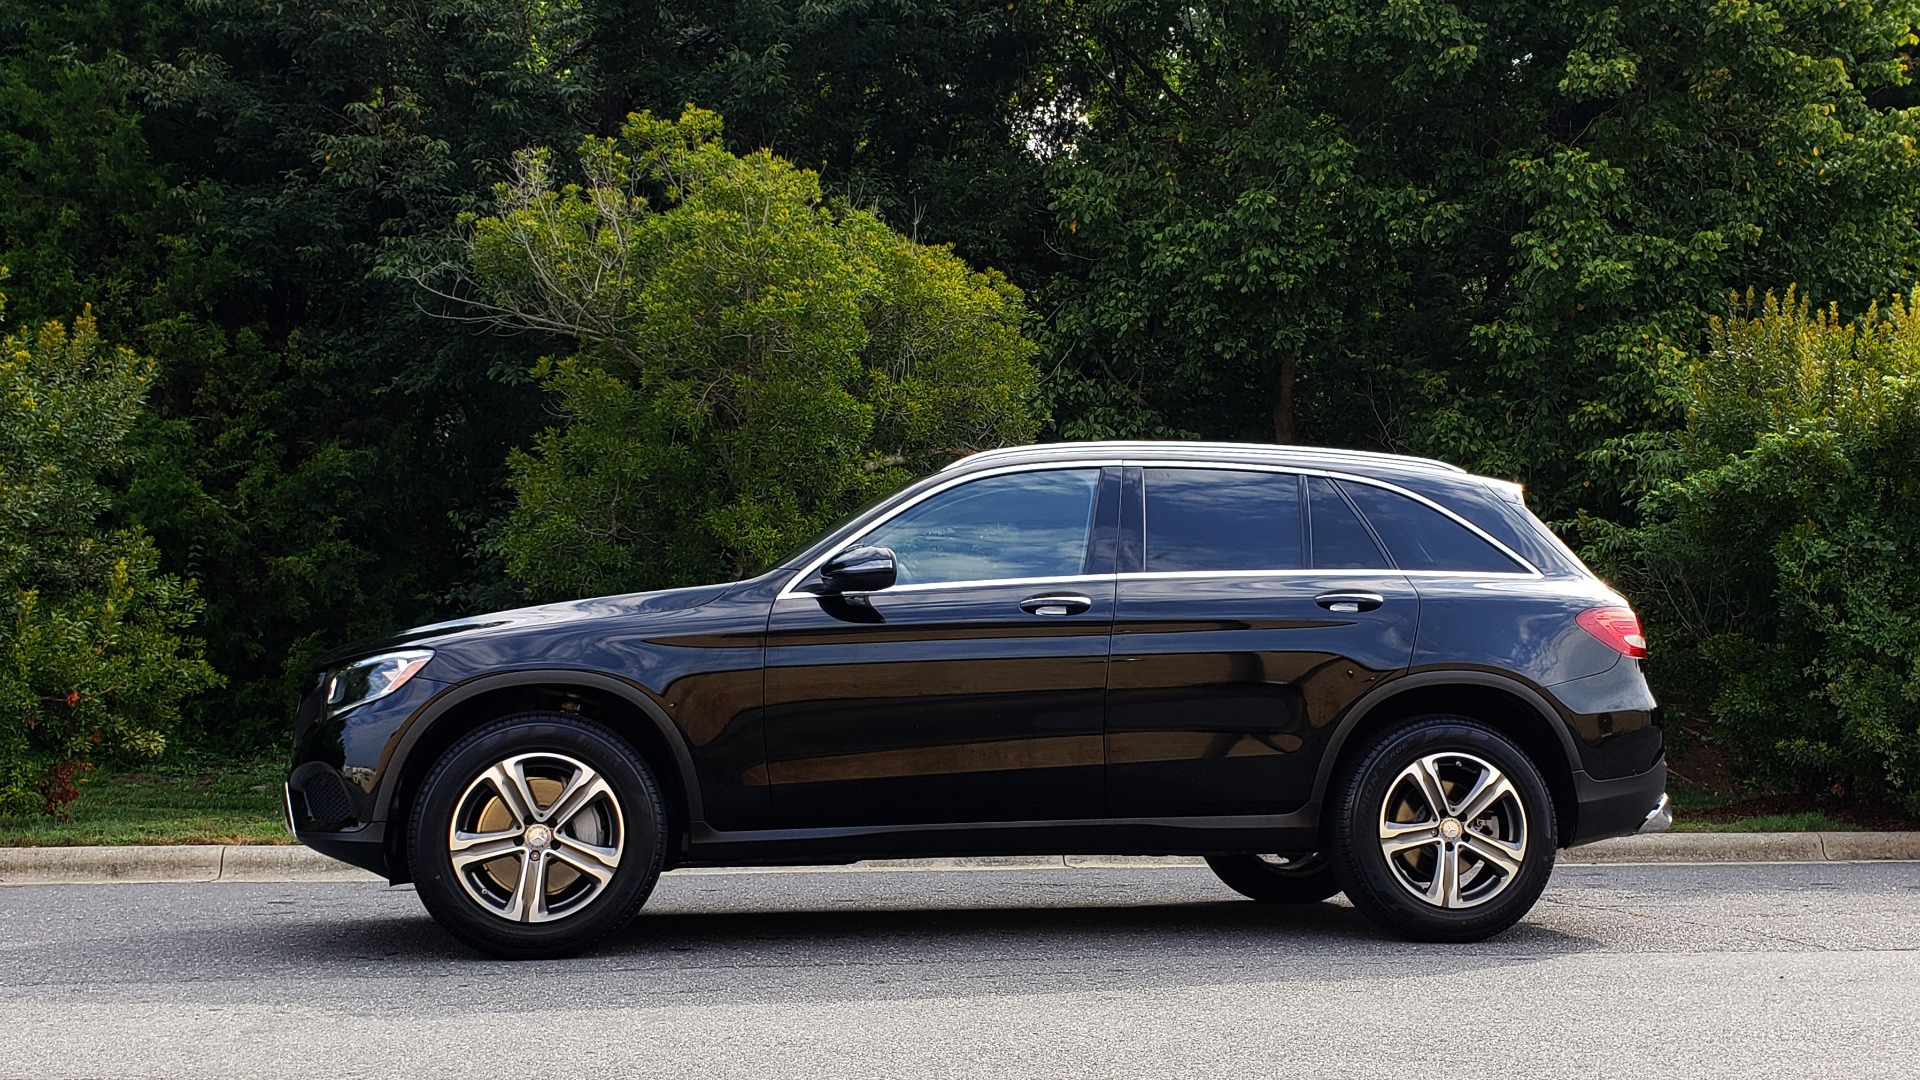 Used 2016 Mercedes-Benz GLC 300 / PANO-ROOF / HEATED SEATS / REARVIEW / NEW TIRES for sale Sold at Formula Imports in Charlotte NC 28227 2